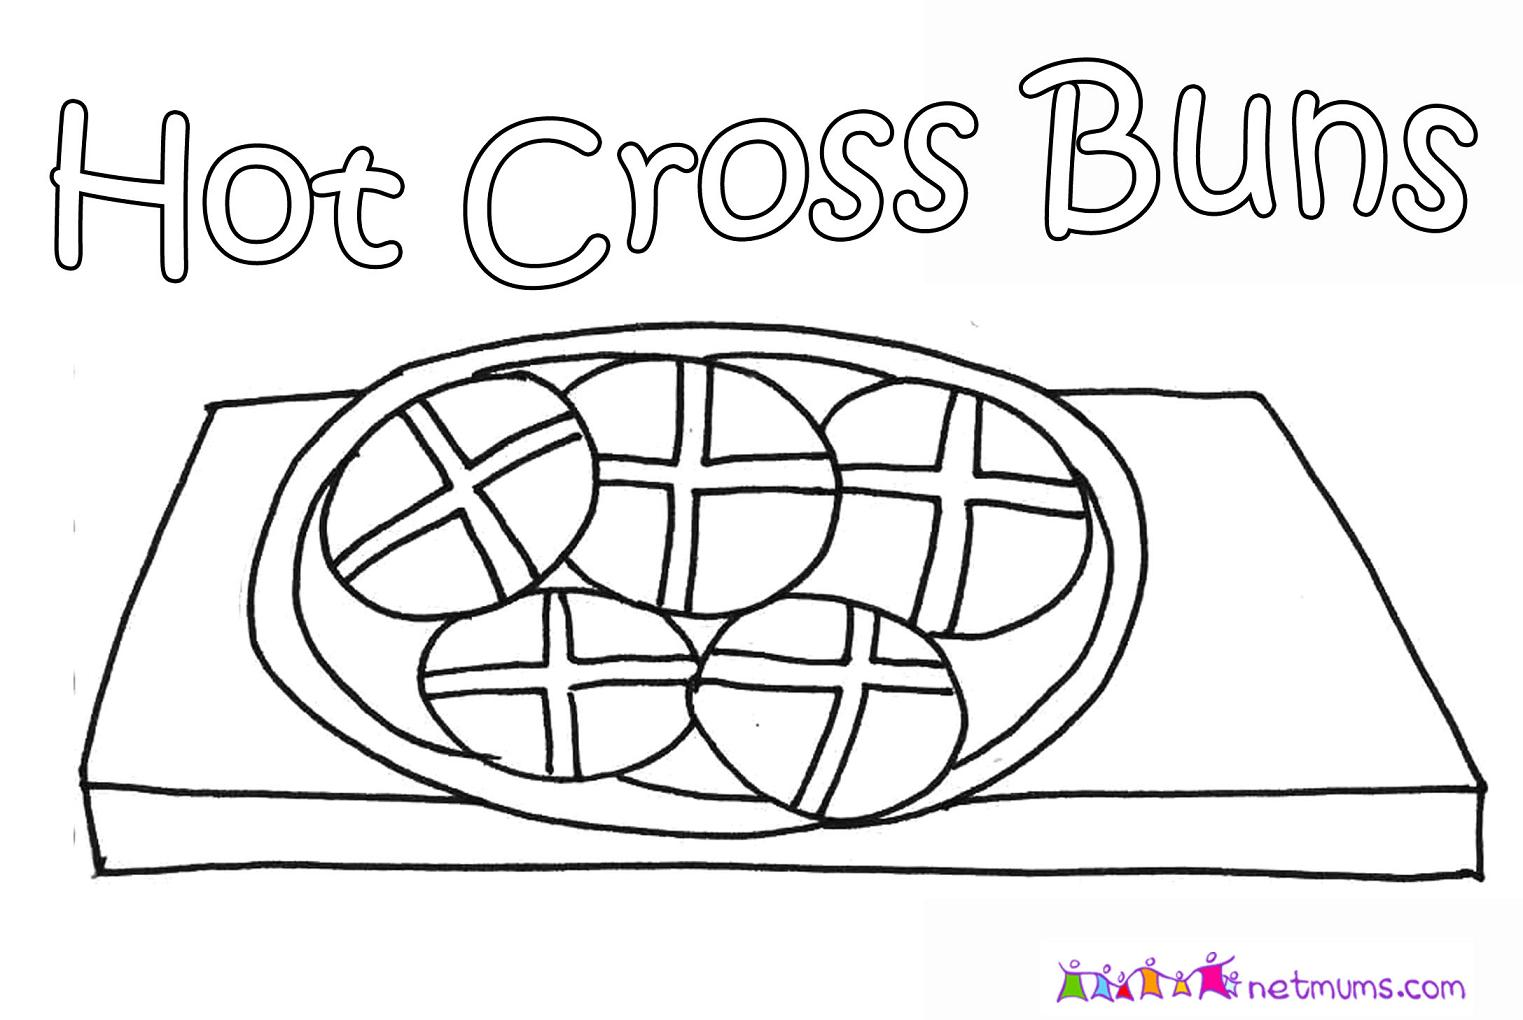 Hot cross buns colouring pictures